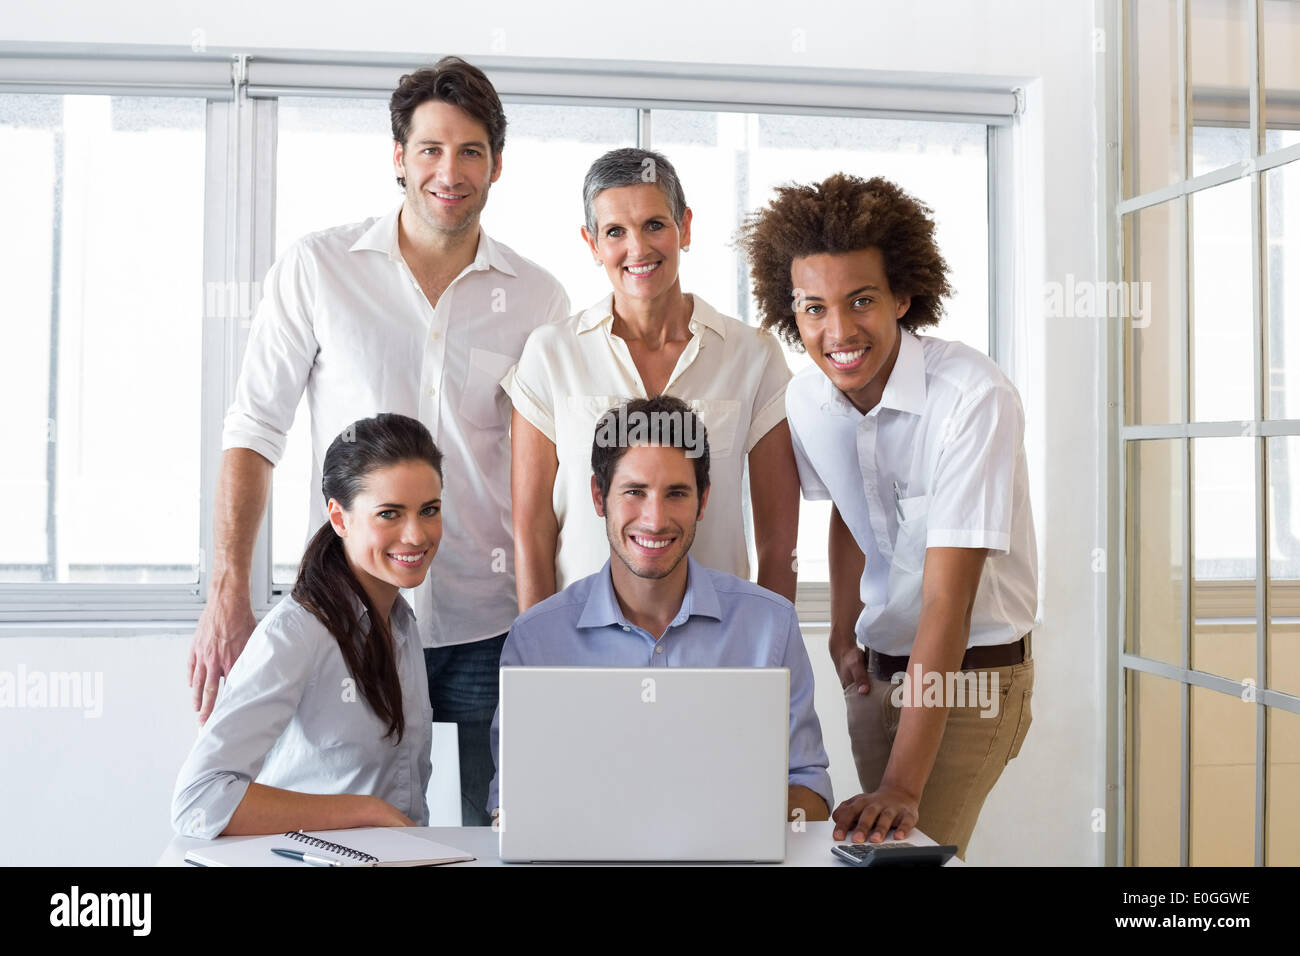 Attractive business people smiling in the workplace - Stock Image